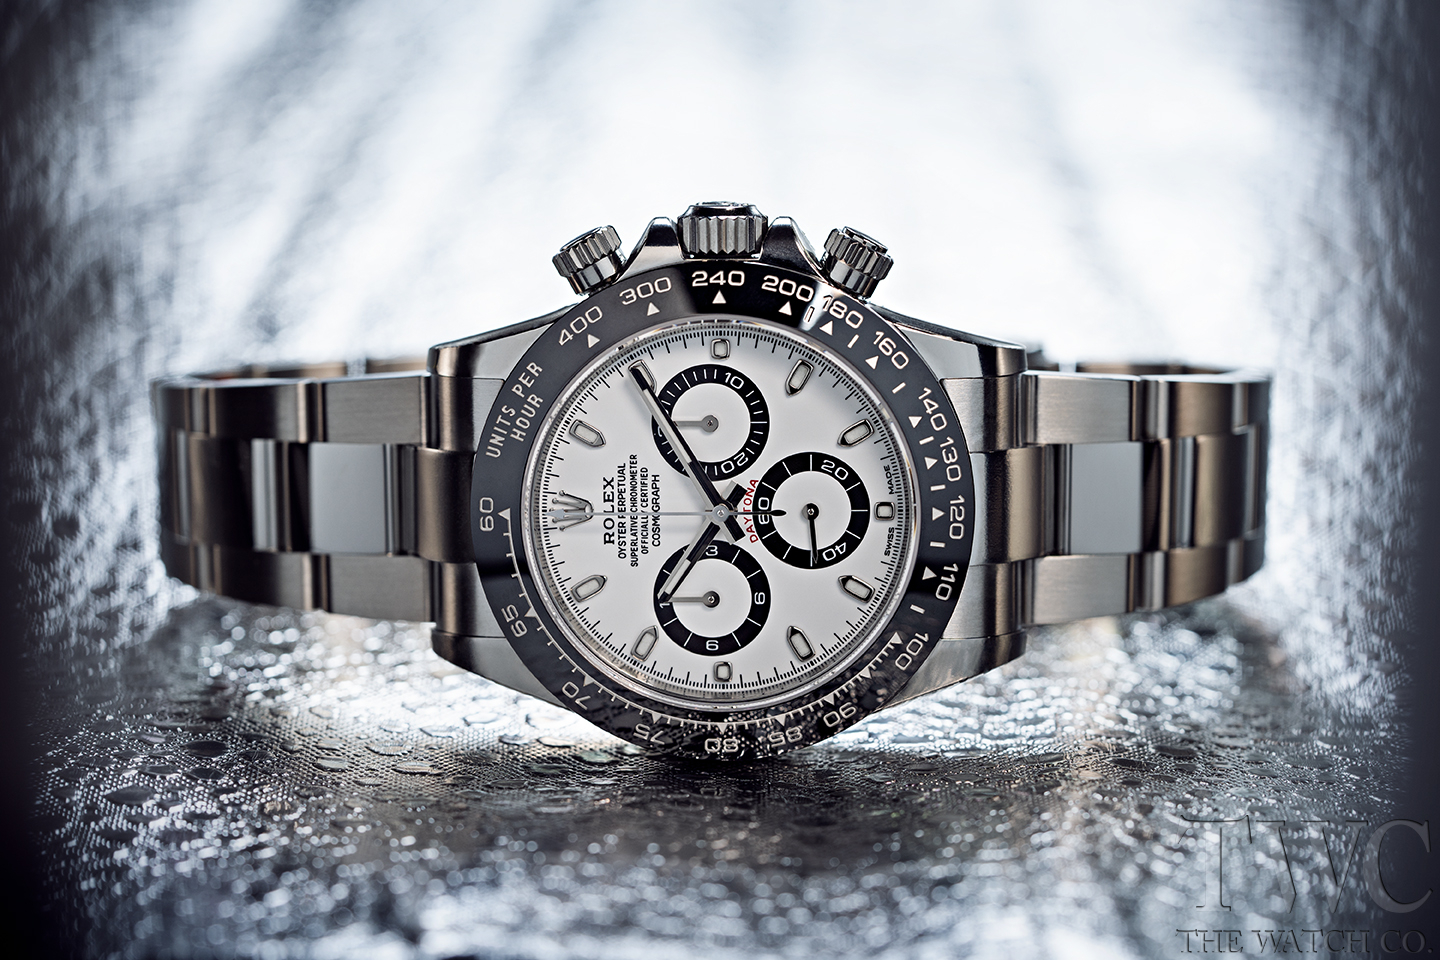 5 Good Reasons Why You Should Get A Chronograph Watch